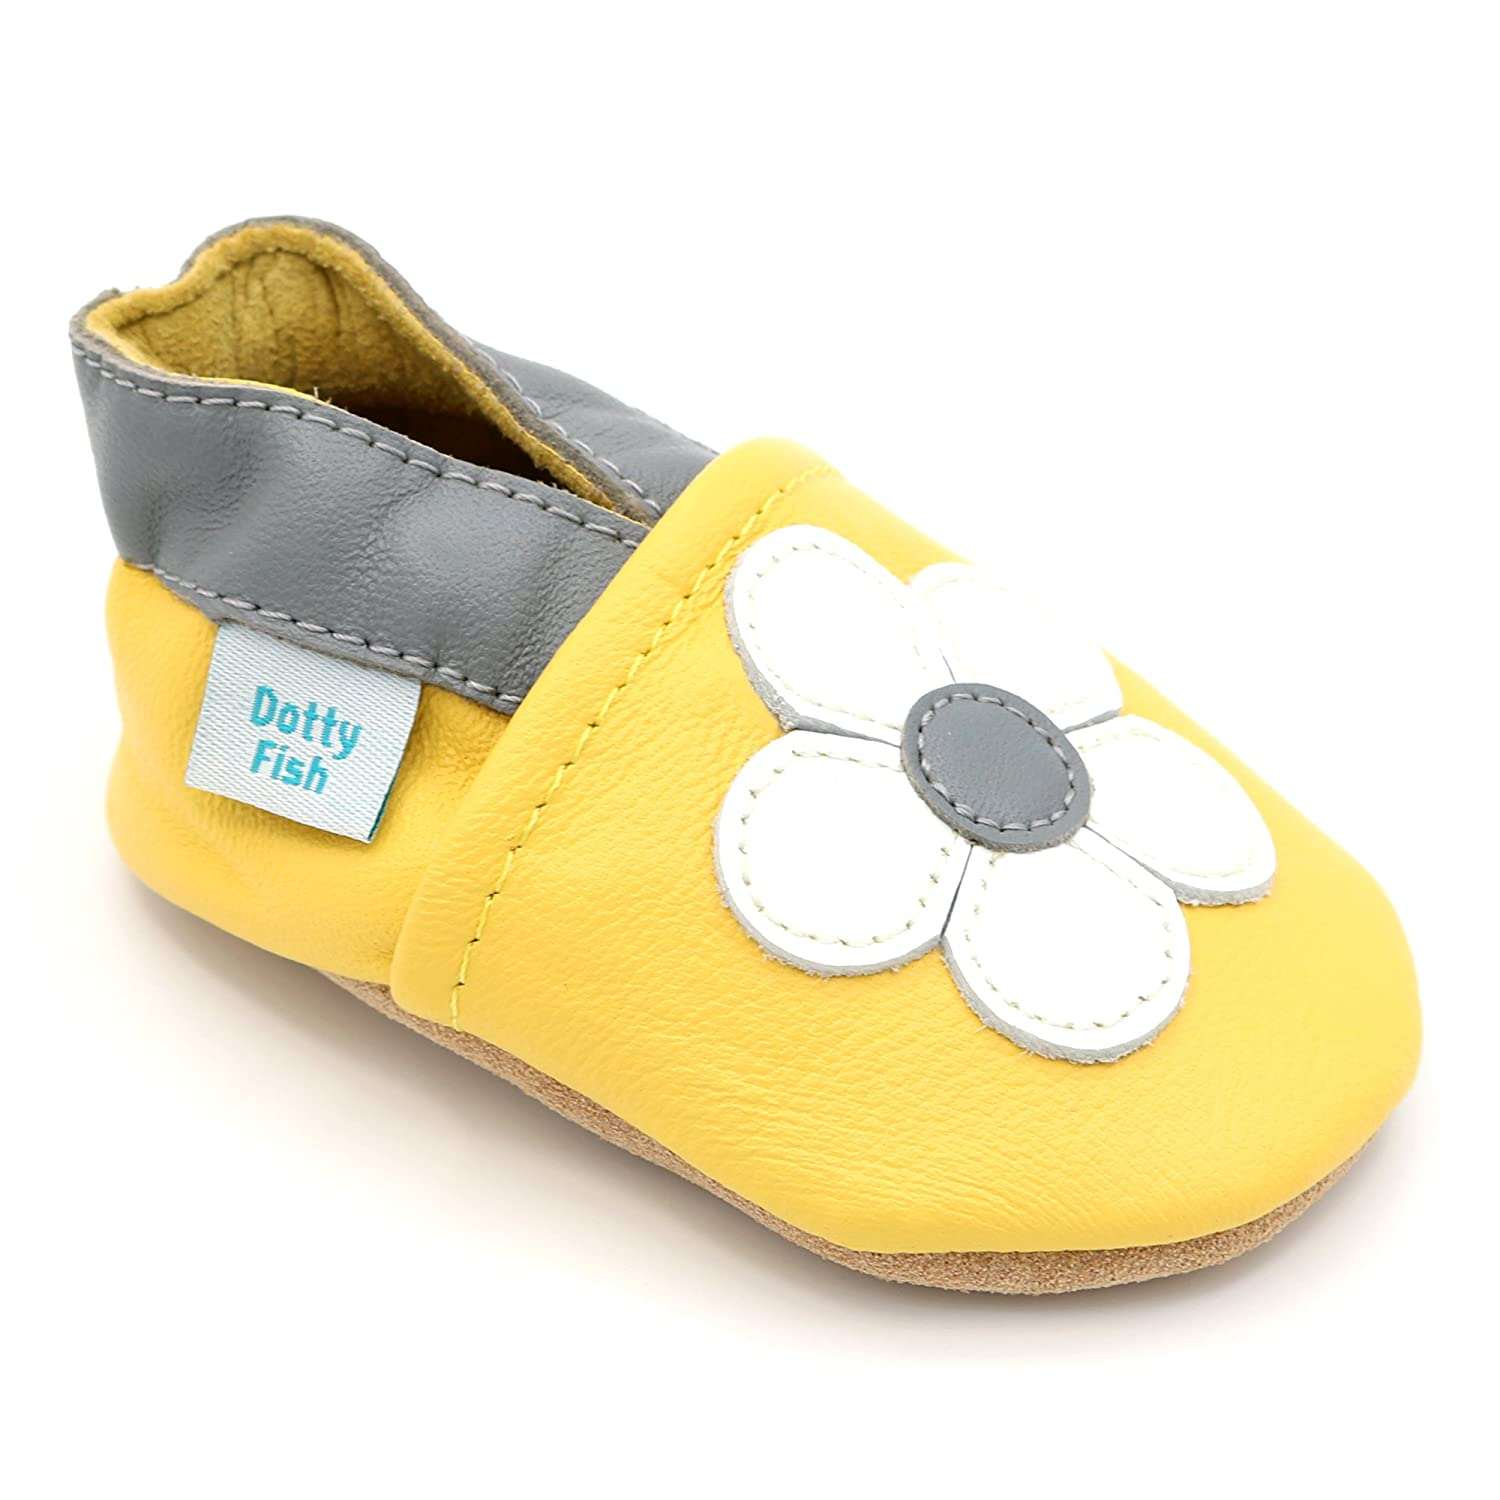 Dotty Fish Soft Leather Baby Shoes with Non Slip Suede Soles. Toddler Shoes. Animals, Flowers and Pretty Designs for Girls. Newborn to 4-5 Years ML2-$P